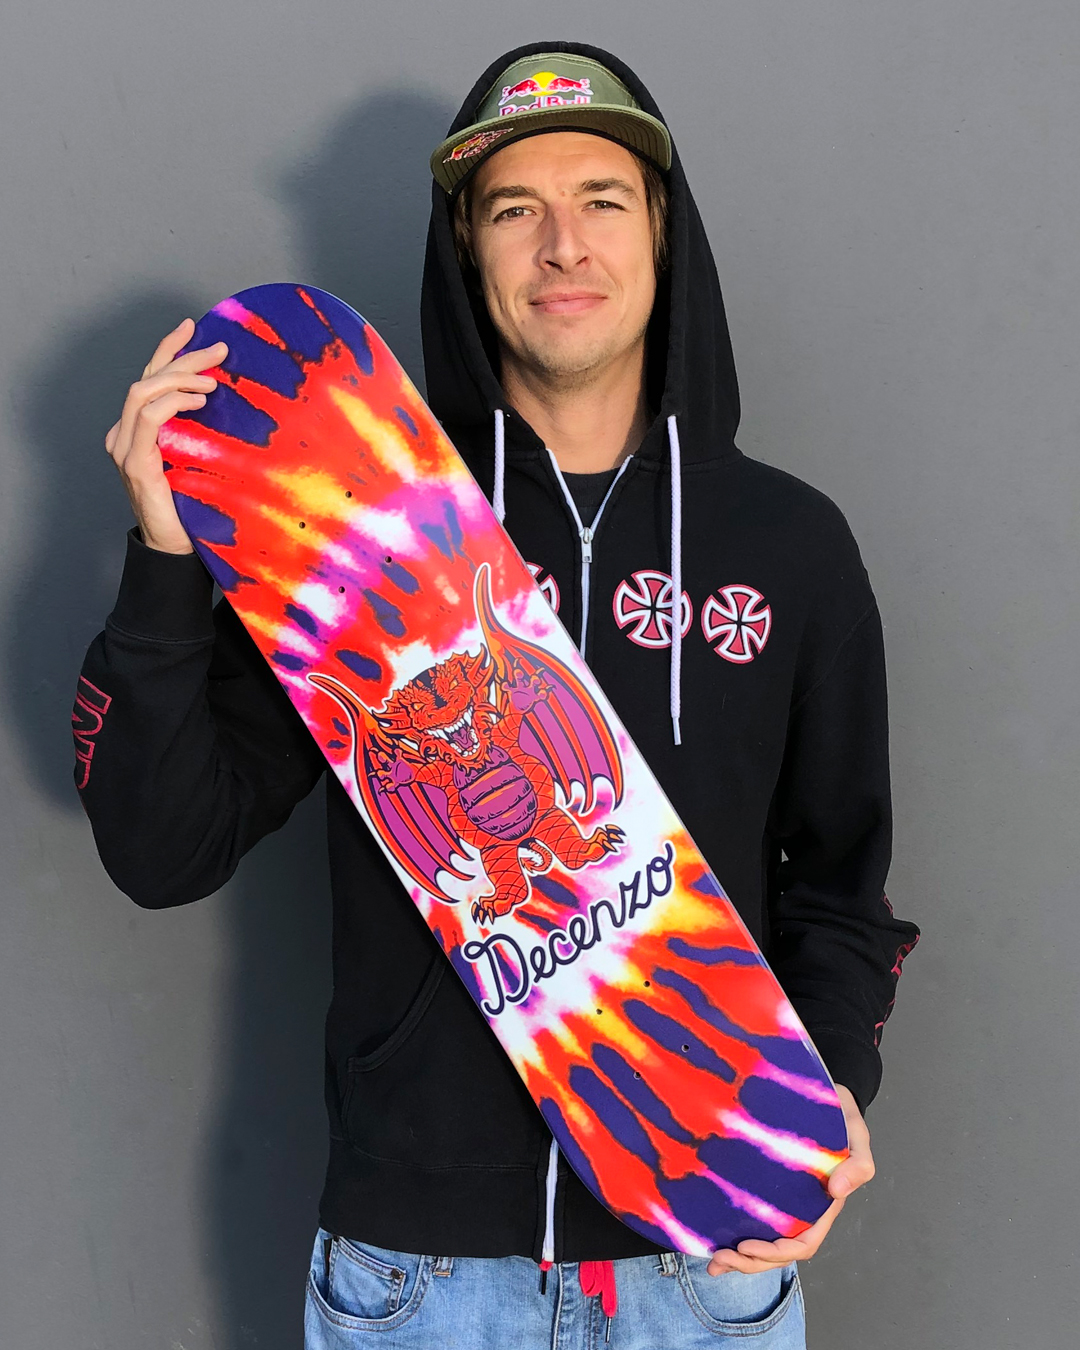 Darkstar Skateboards Summer 2019 Grizzly  Ryan Decenzo 2